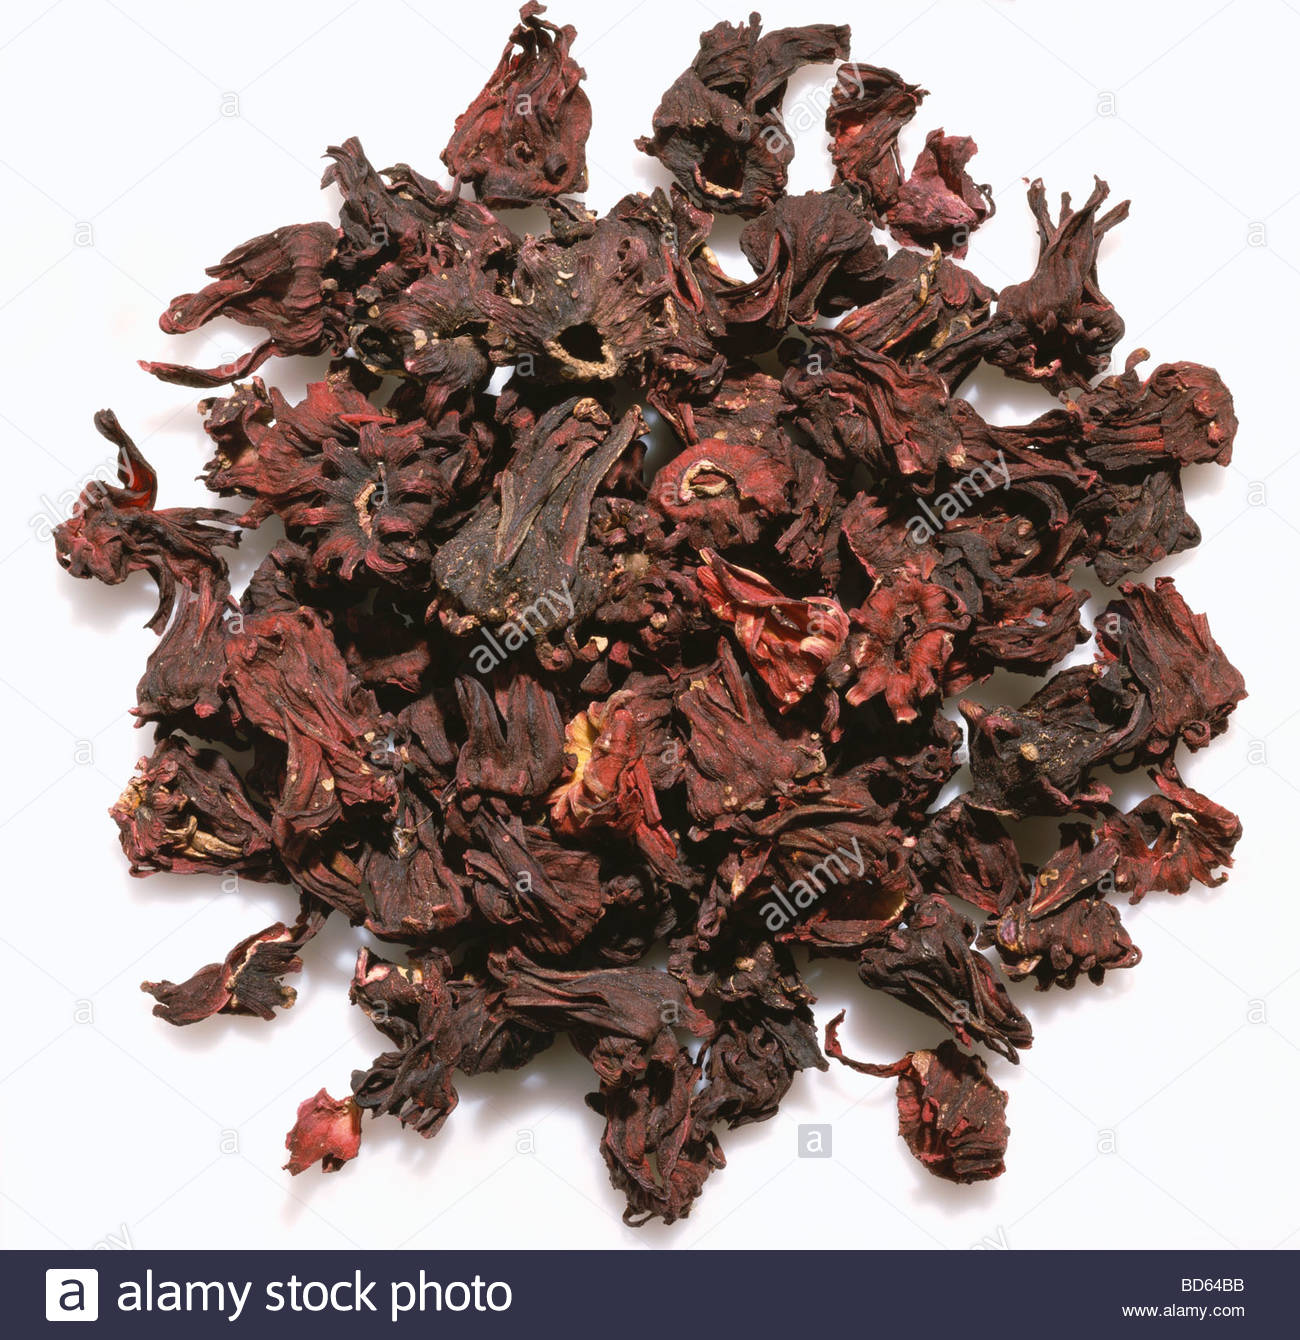 Dried hibiscus flower stock photos dried hibiscus flower stock pile of dried hibiscus on a white background stock image izmirmasajfo